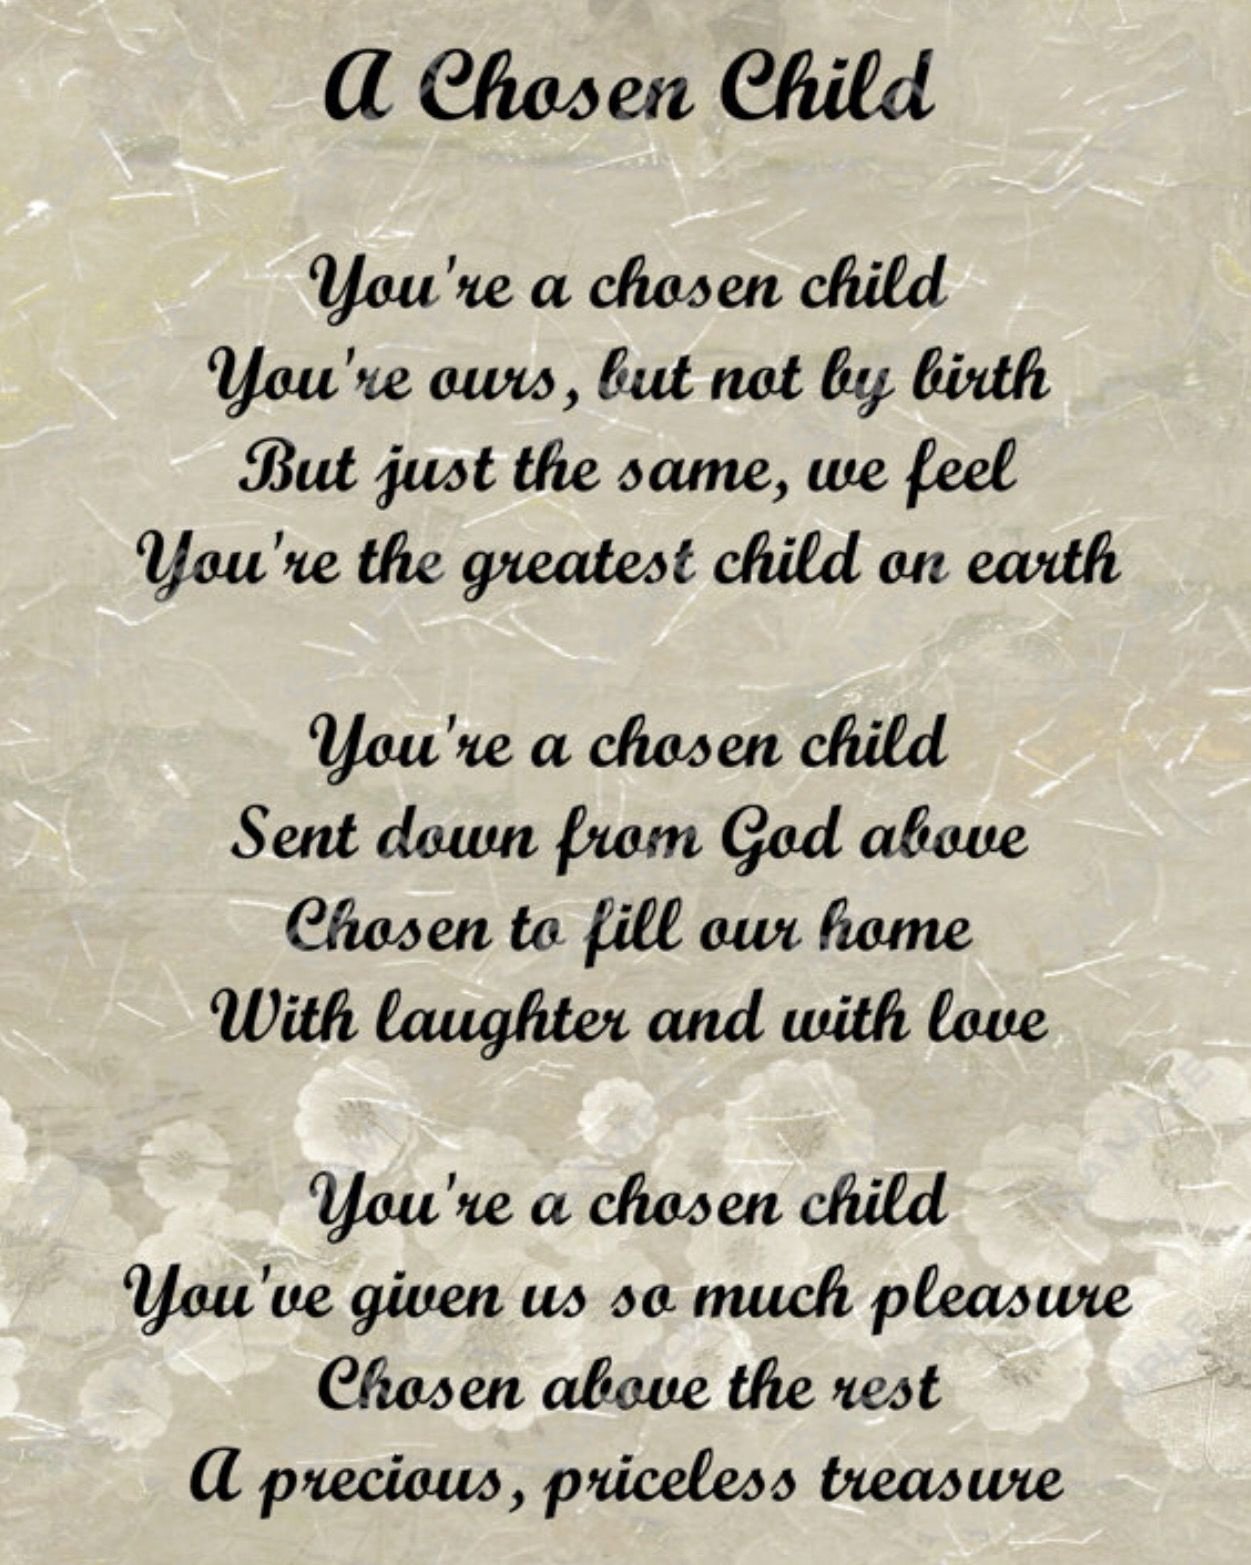 Adoption Quotes Best Pinamanda Stratton On Adoption  Pinterest  Adoption Foster . Design Ideas